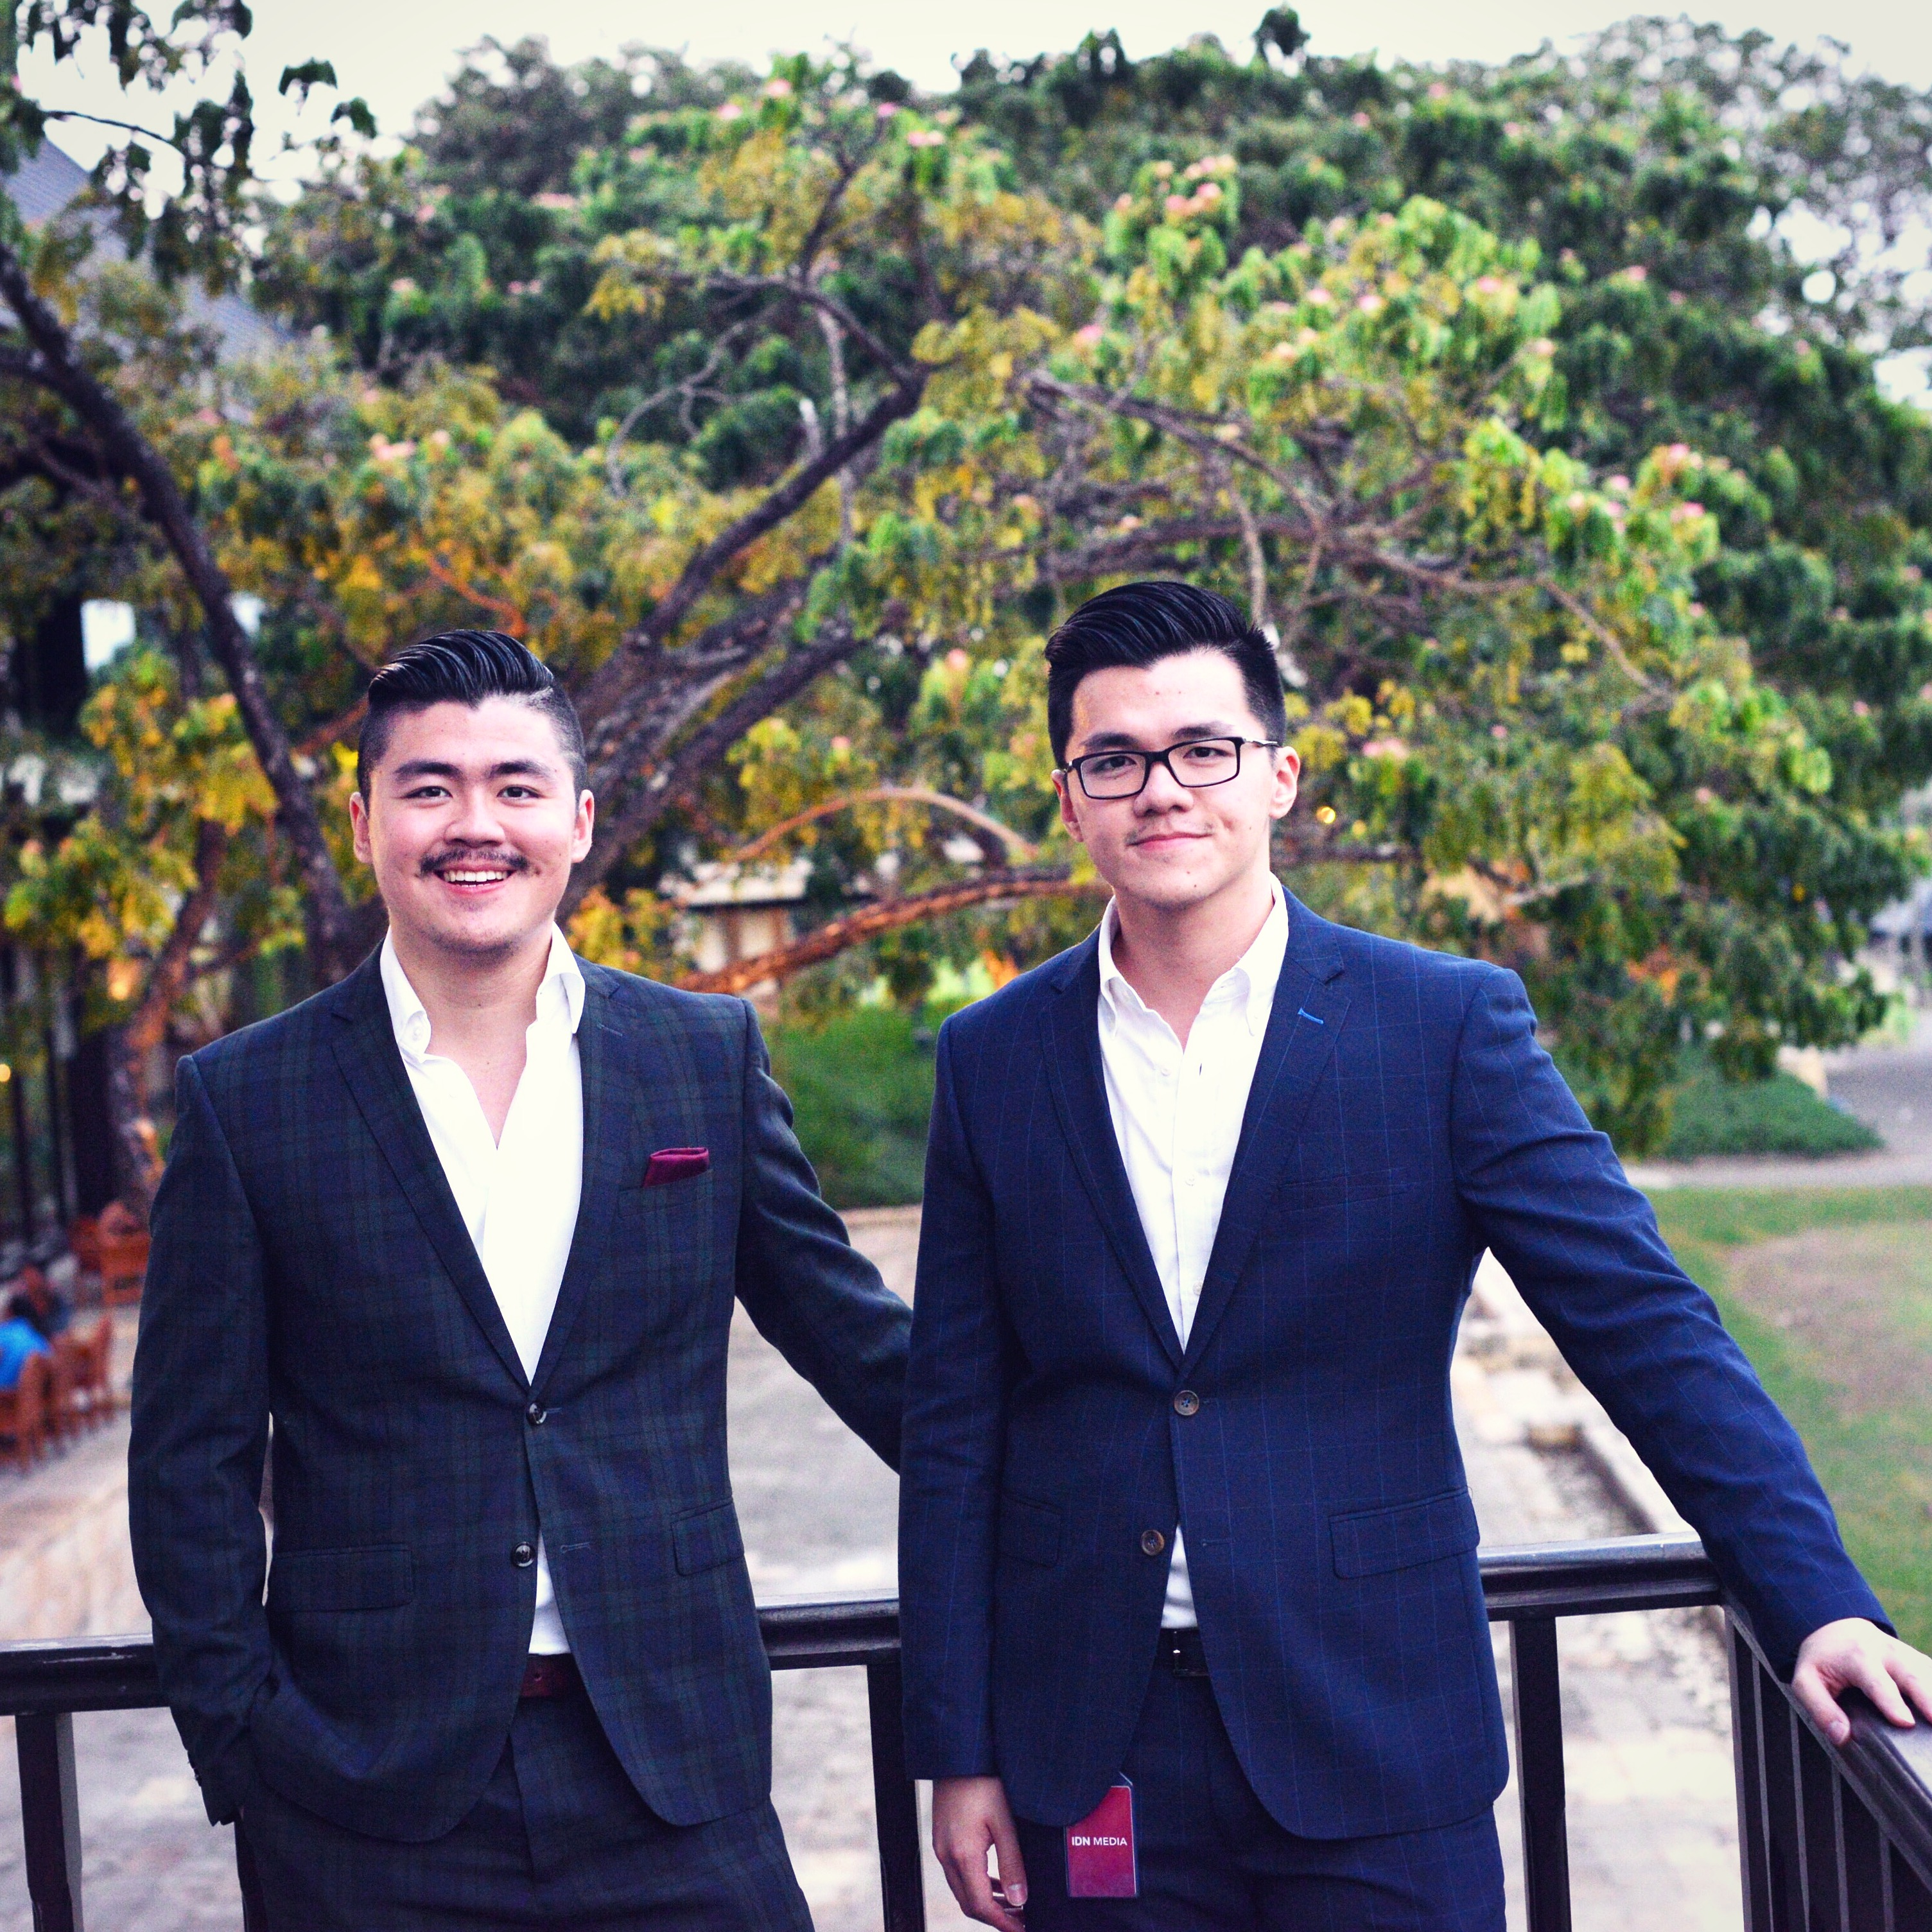 Co-founder IDN Media, Winston and William Utomo, Featured in Forbes' 30 Under 30 Asia 2017